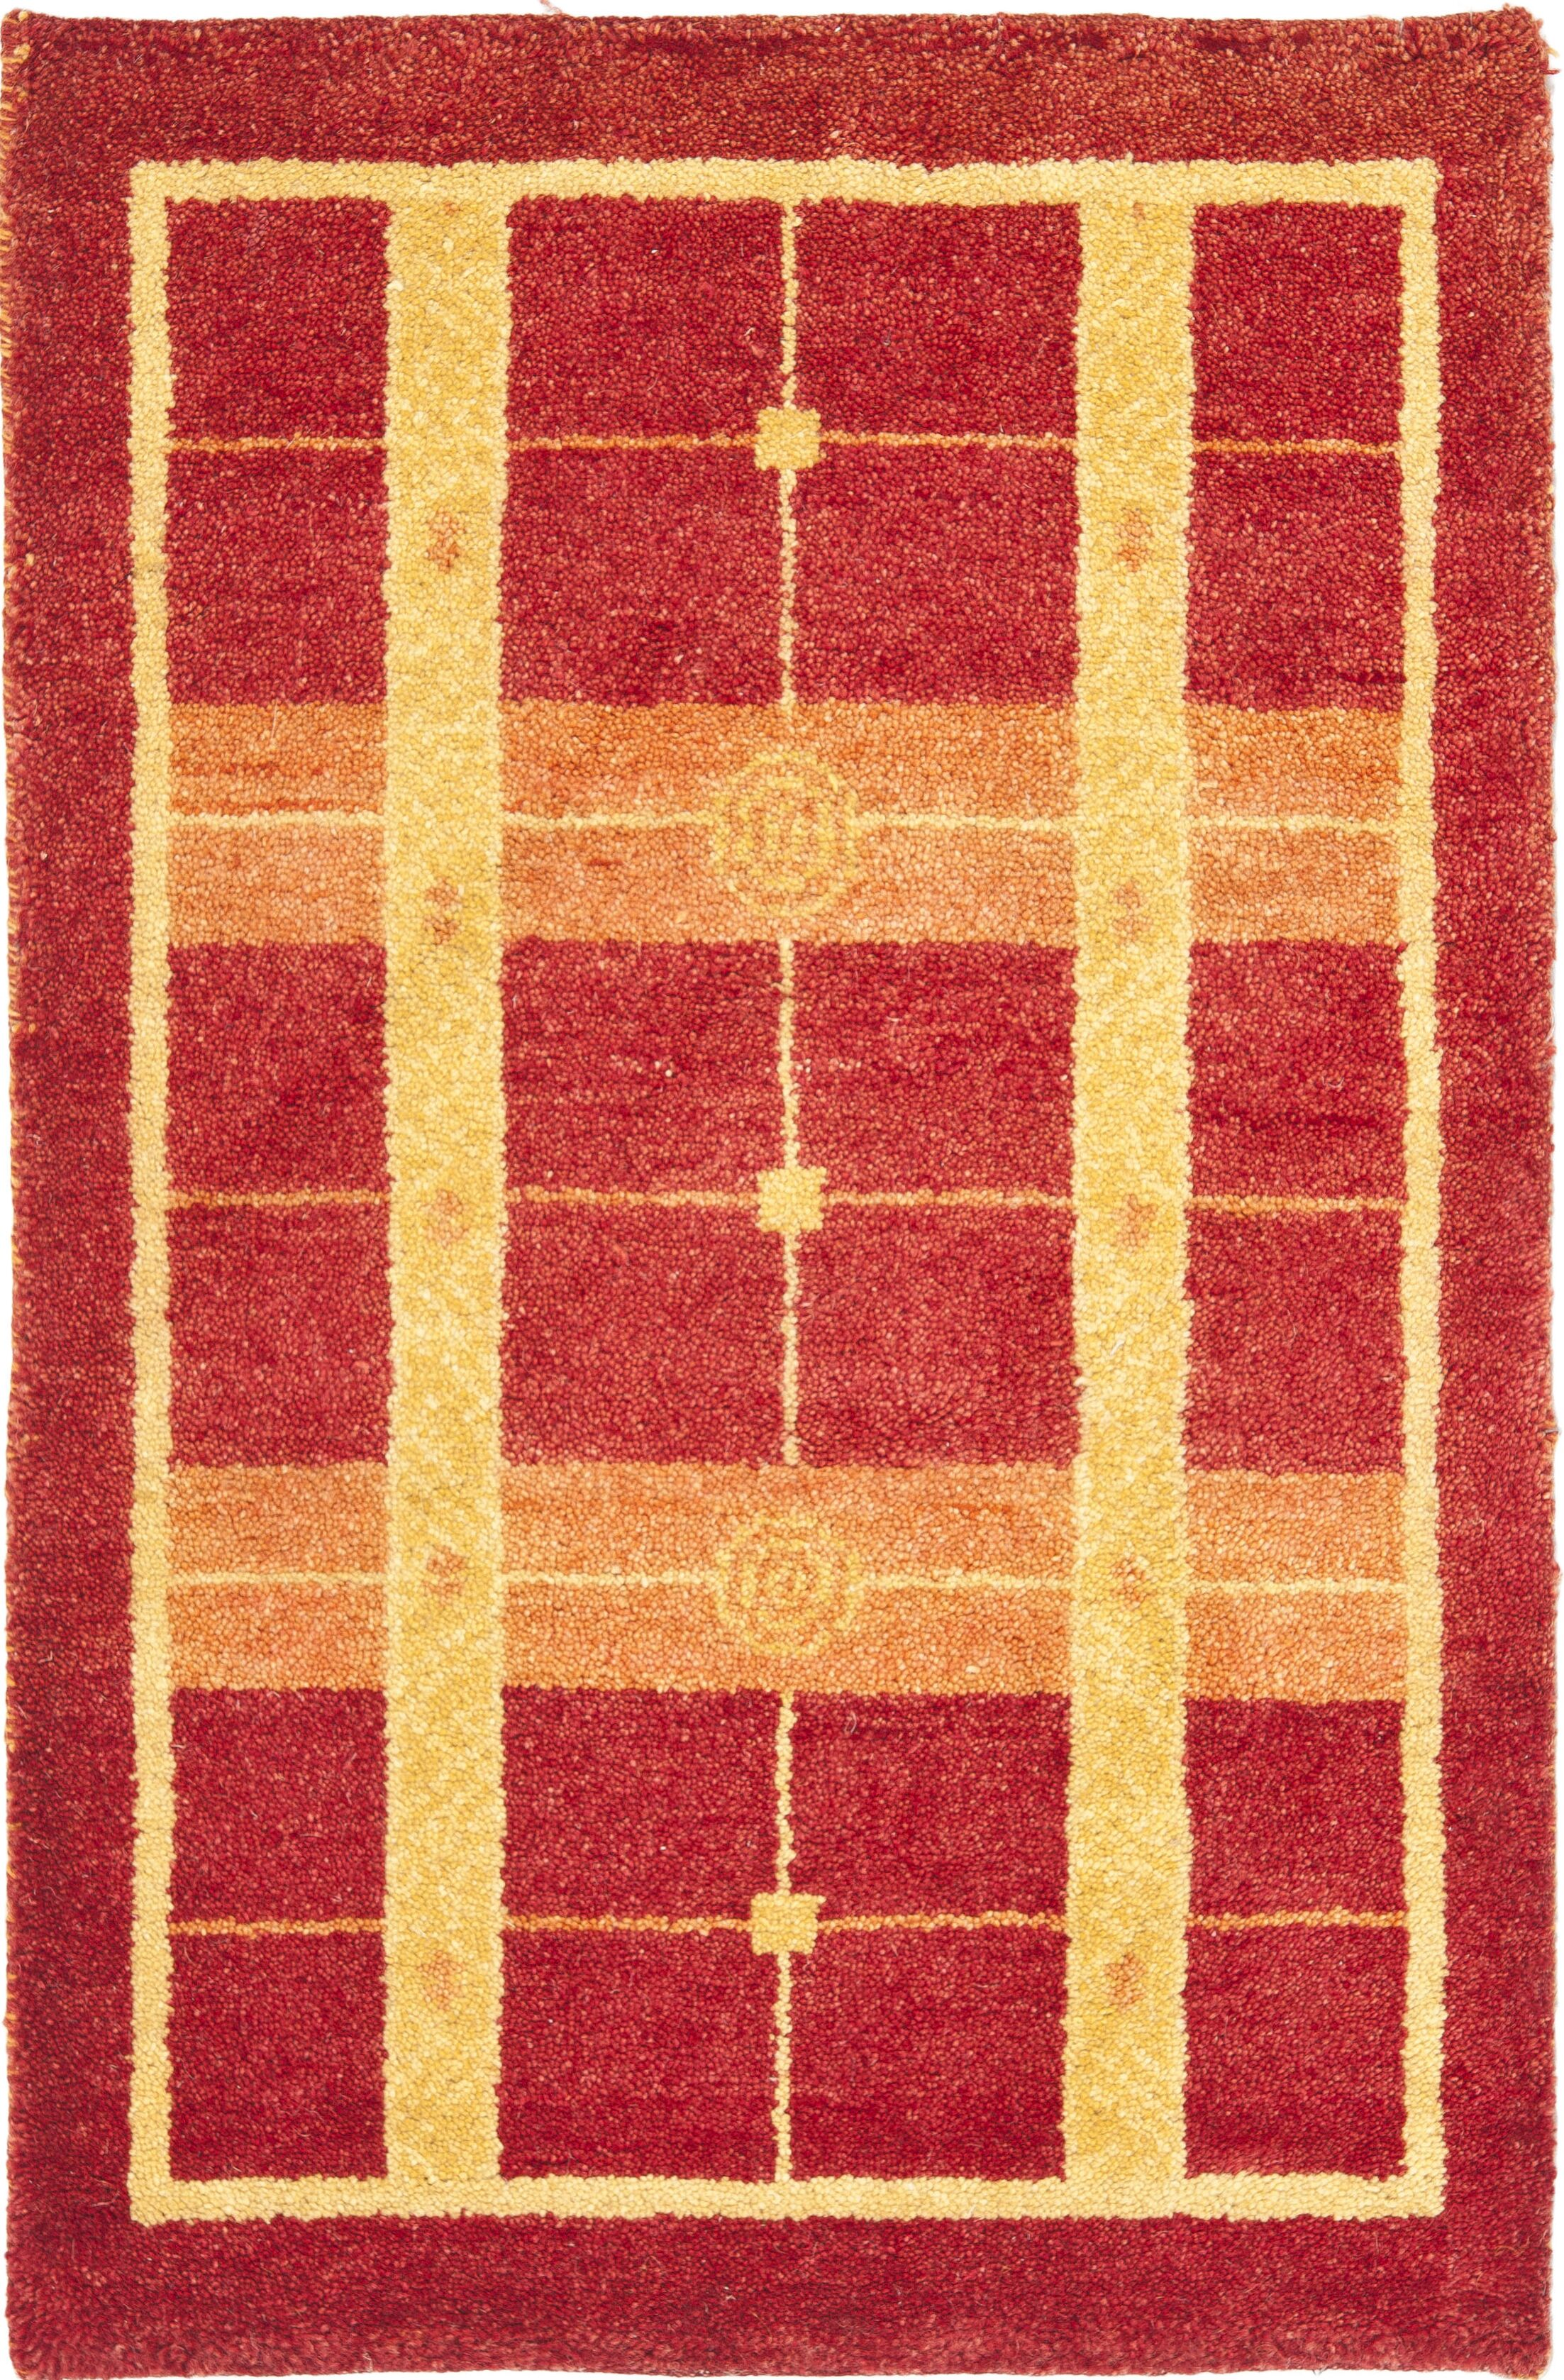 Gabbeh Assorted Rug Rug Size: Rectangle 6' x 8'